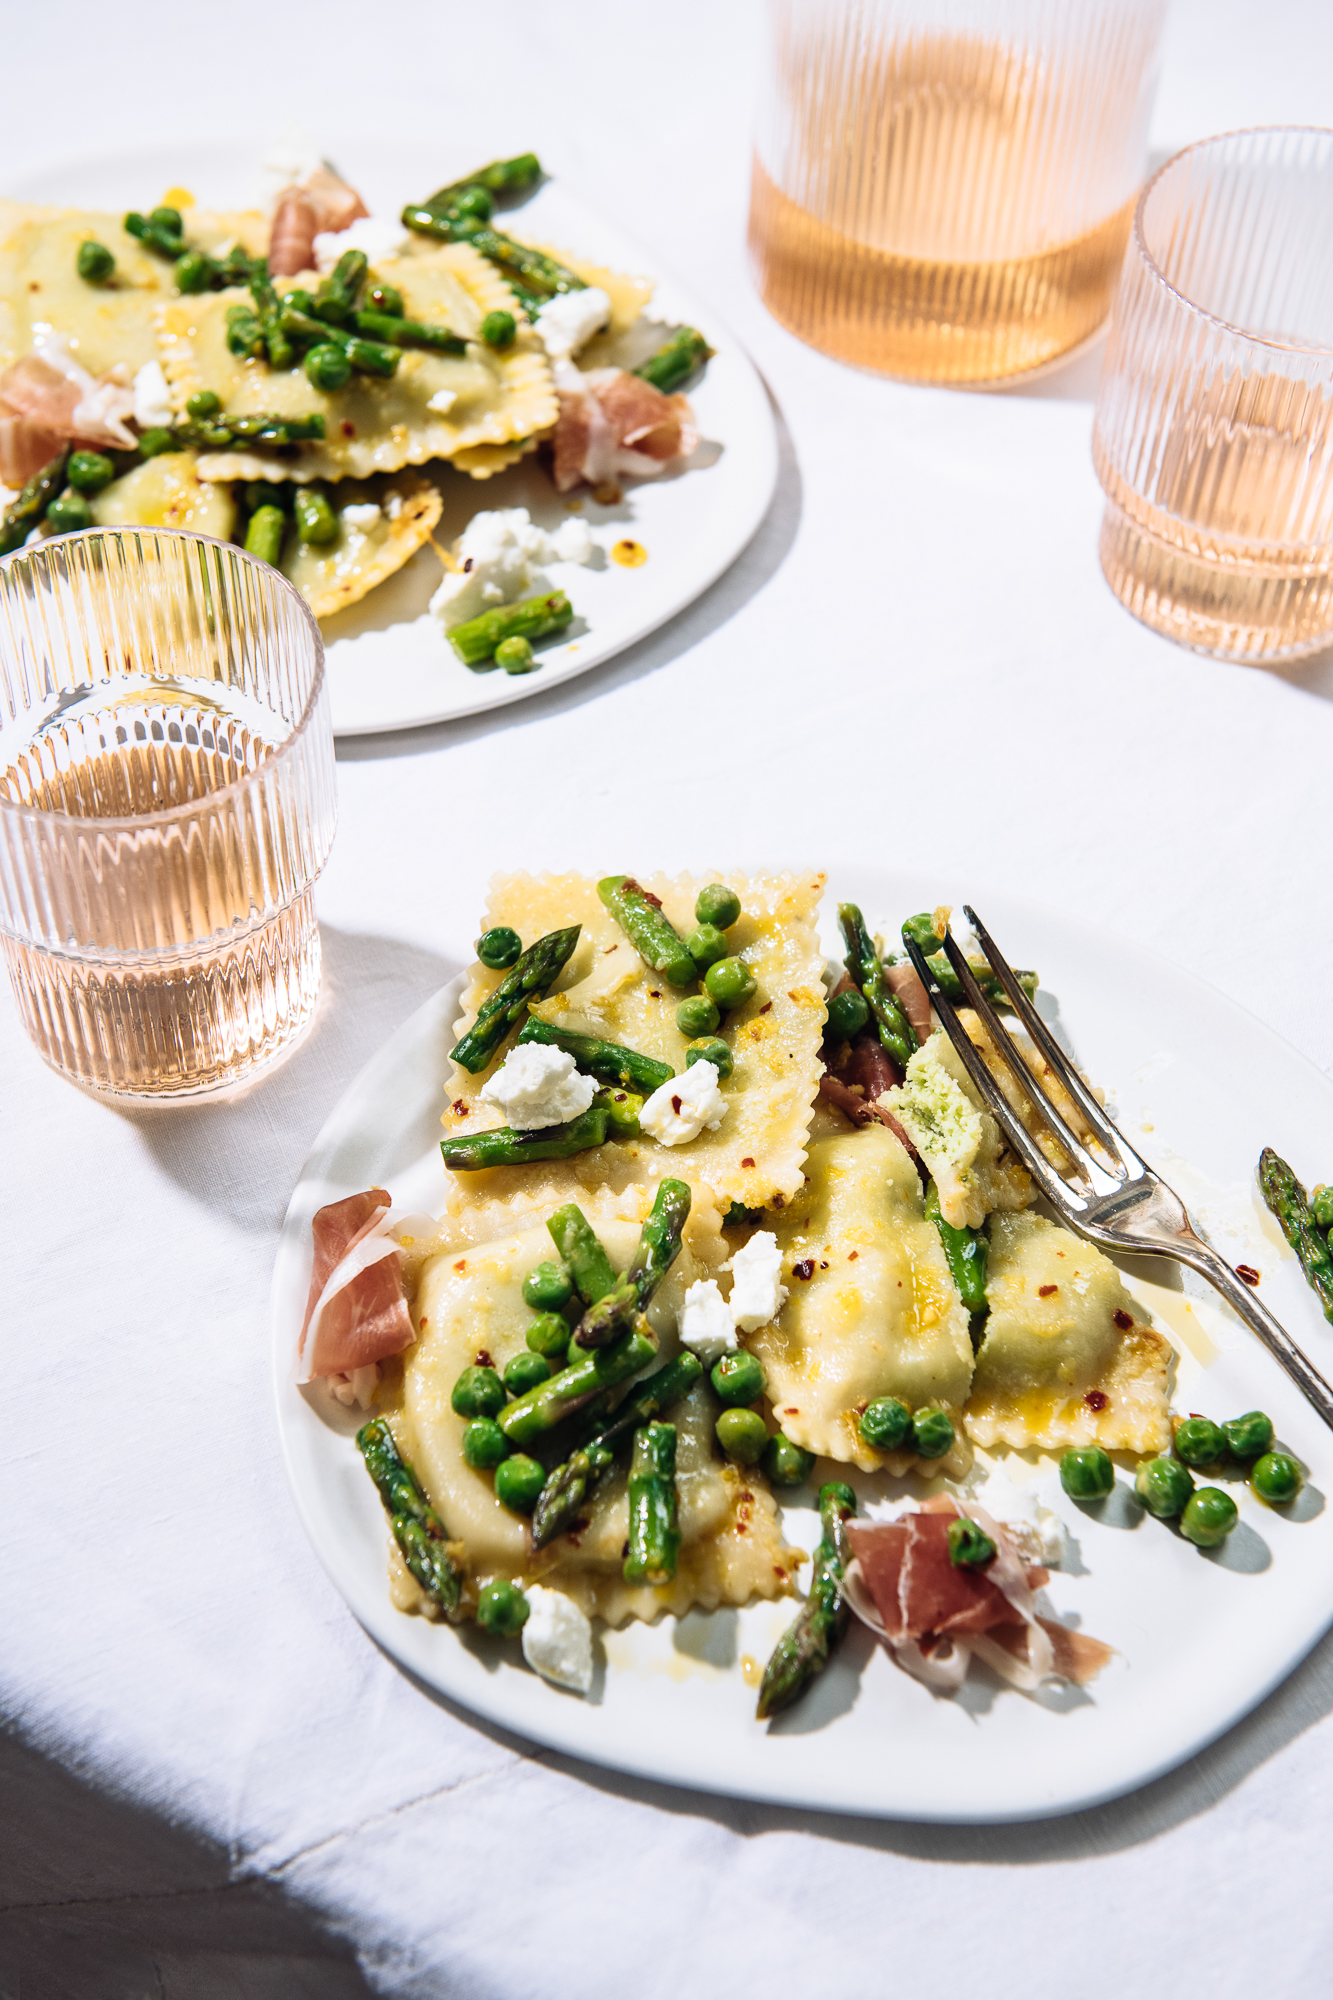 goat cheese ravioli with spring vegetables and rose wine